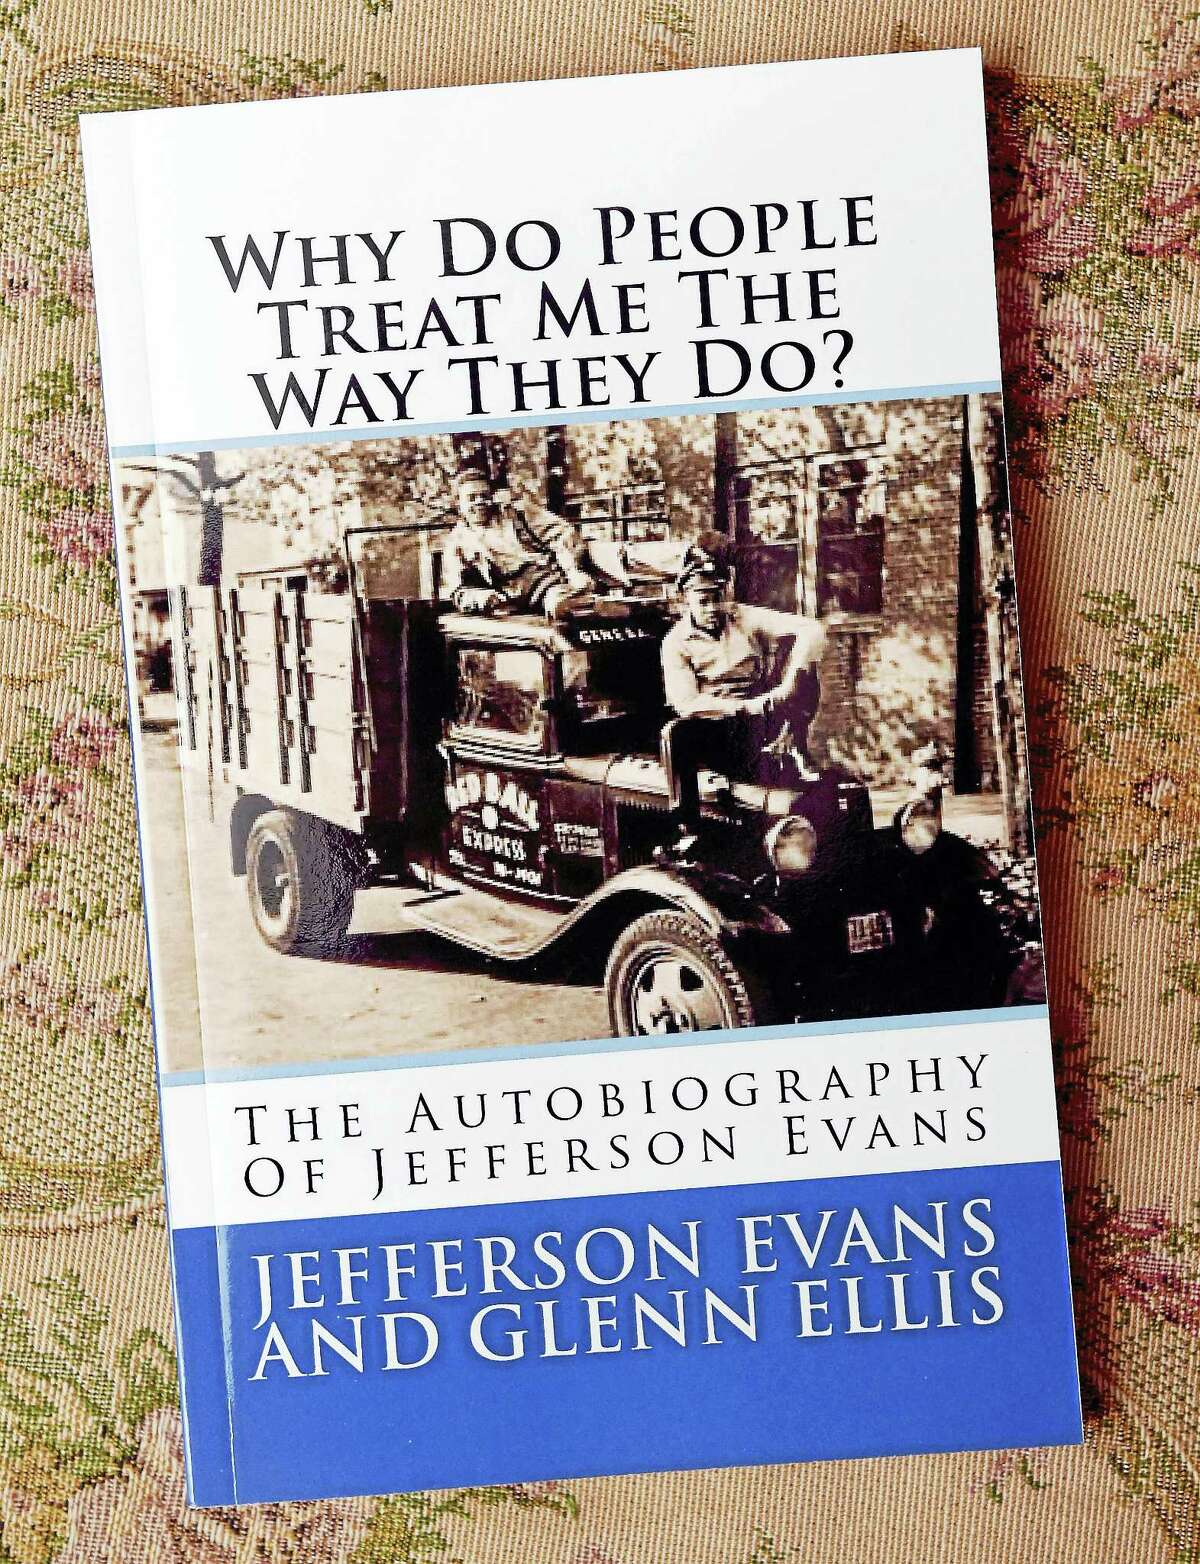 The book, Why Do People Treat Me The Way They Do?, the Autobiography of Jefferson Evans.